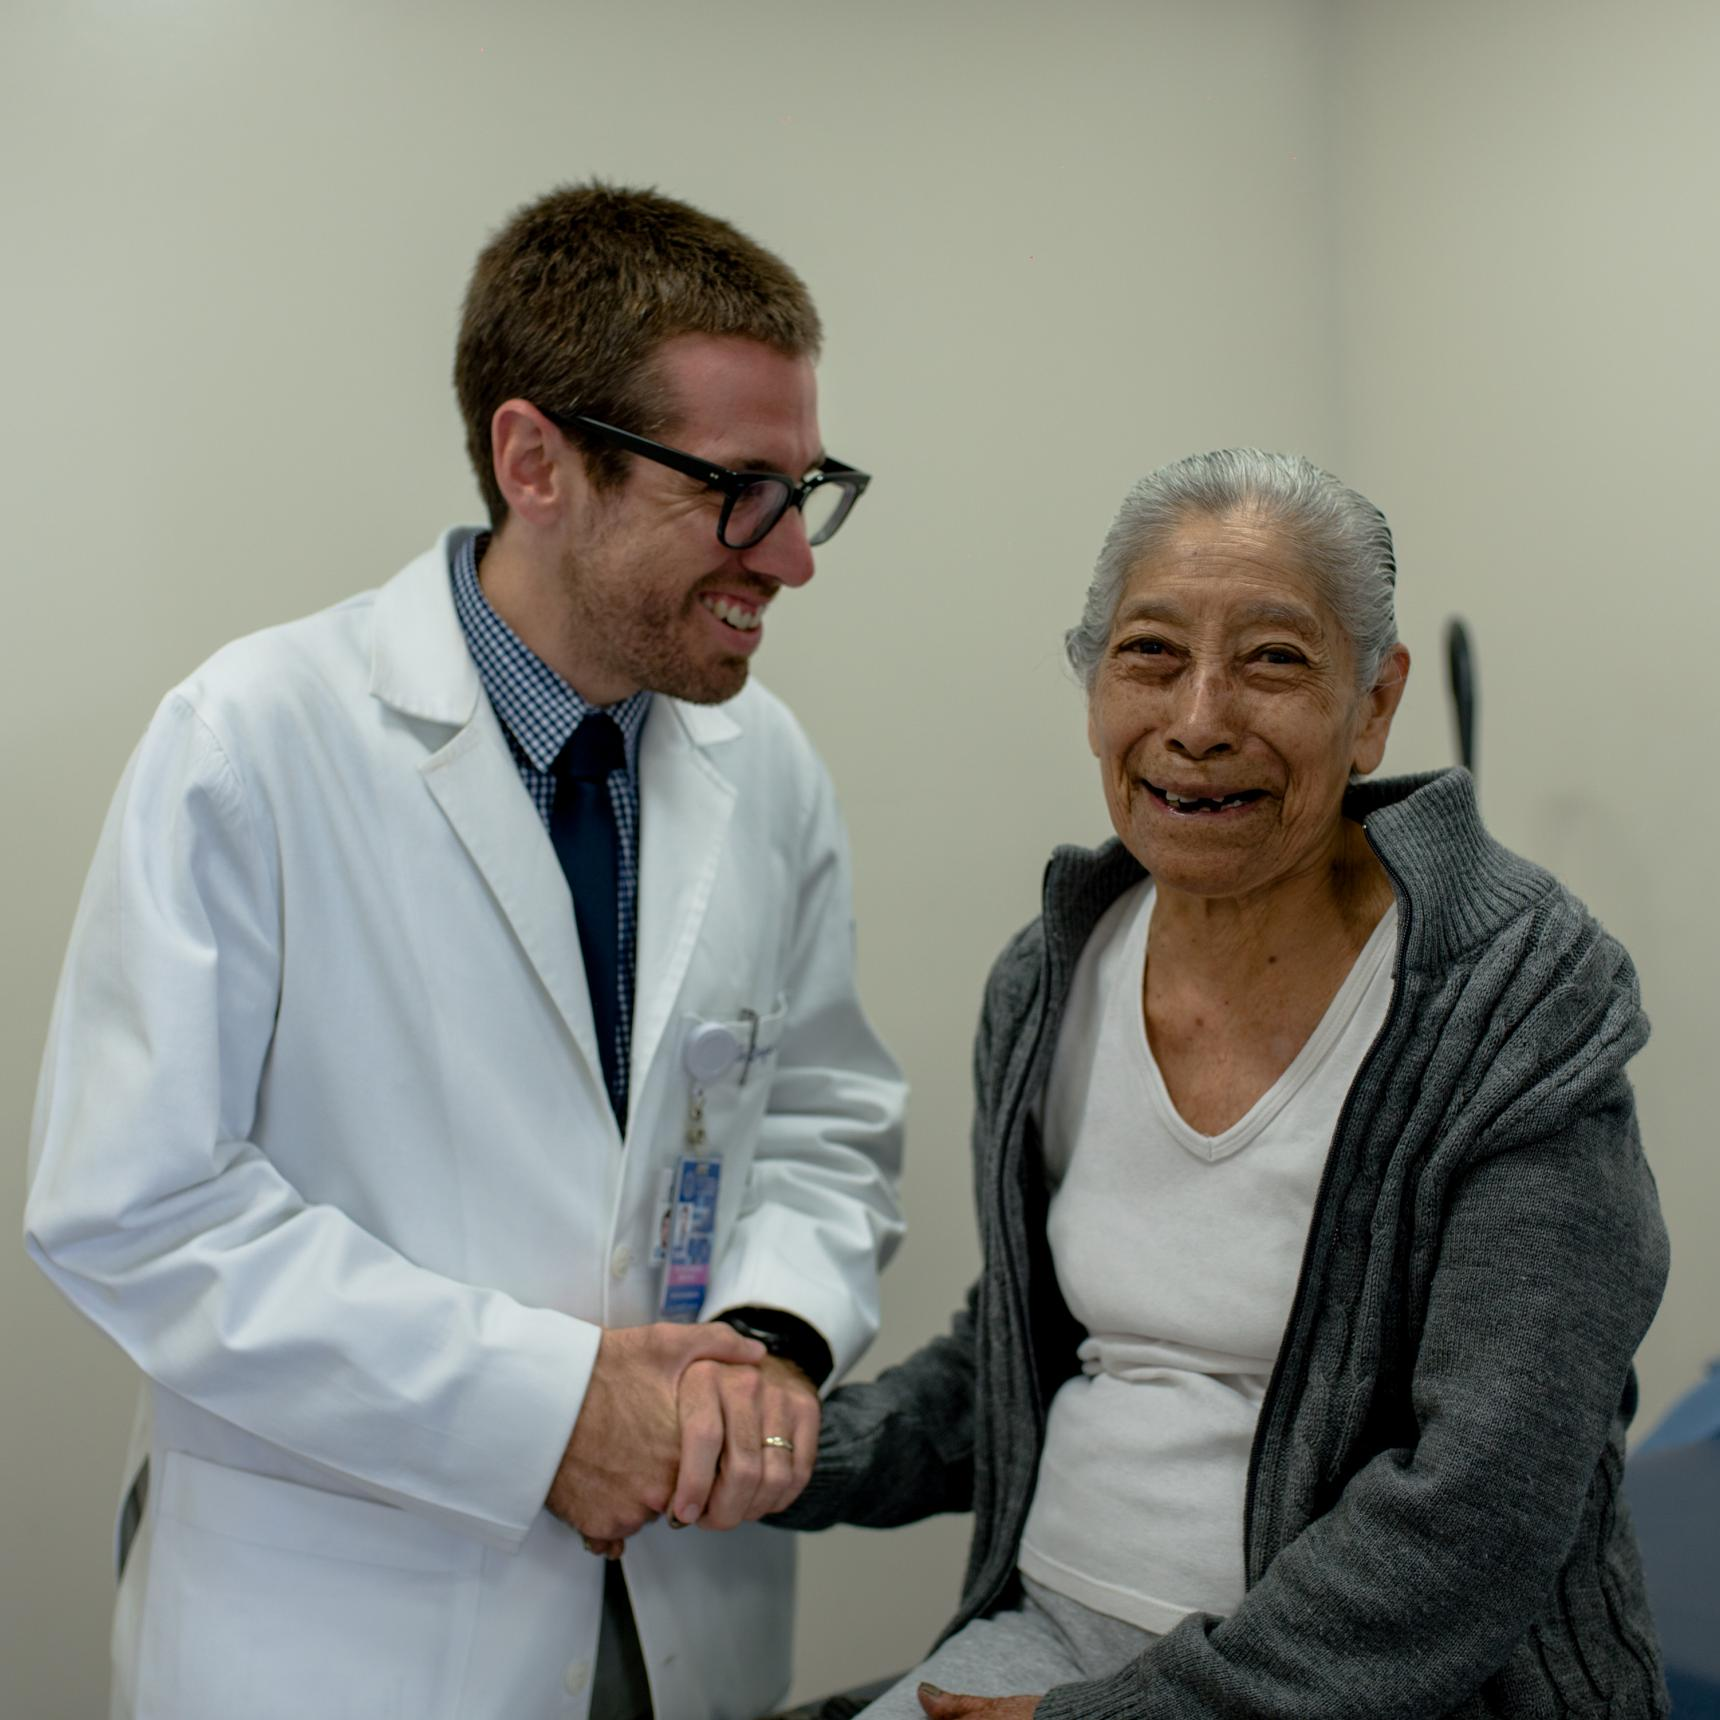 Dr. Enrique Soto smiling and laughing with a patient